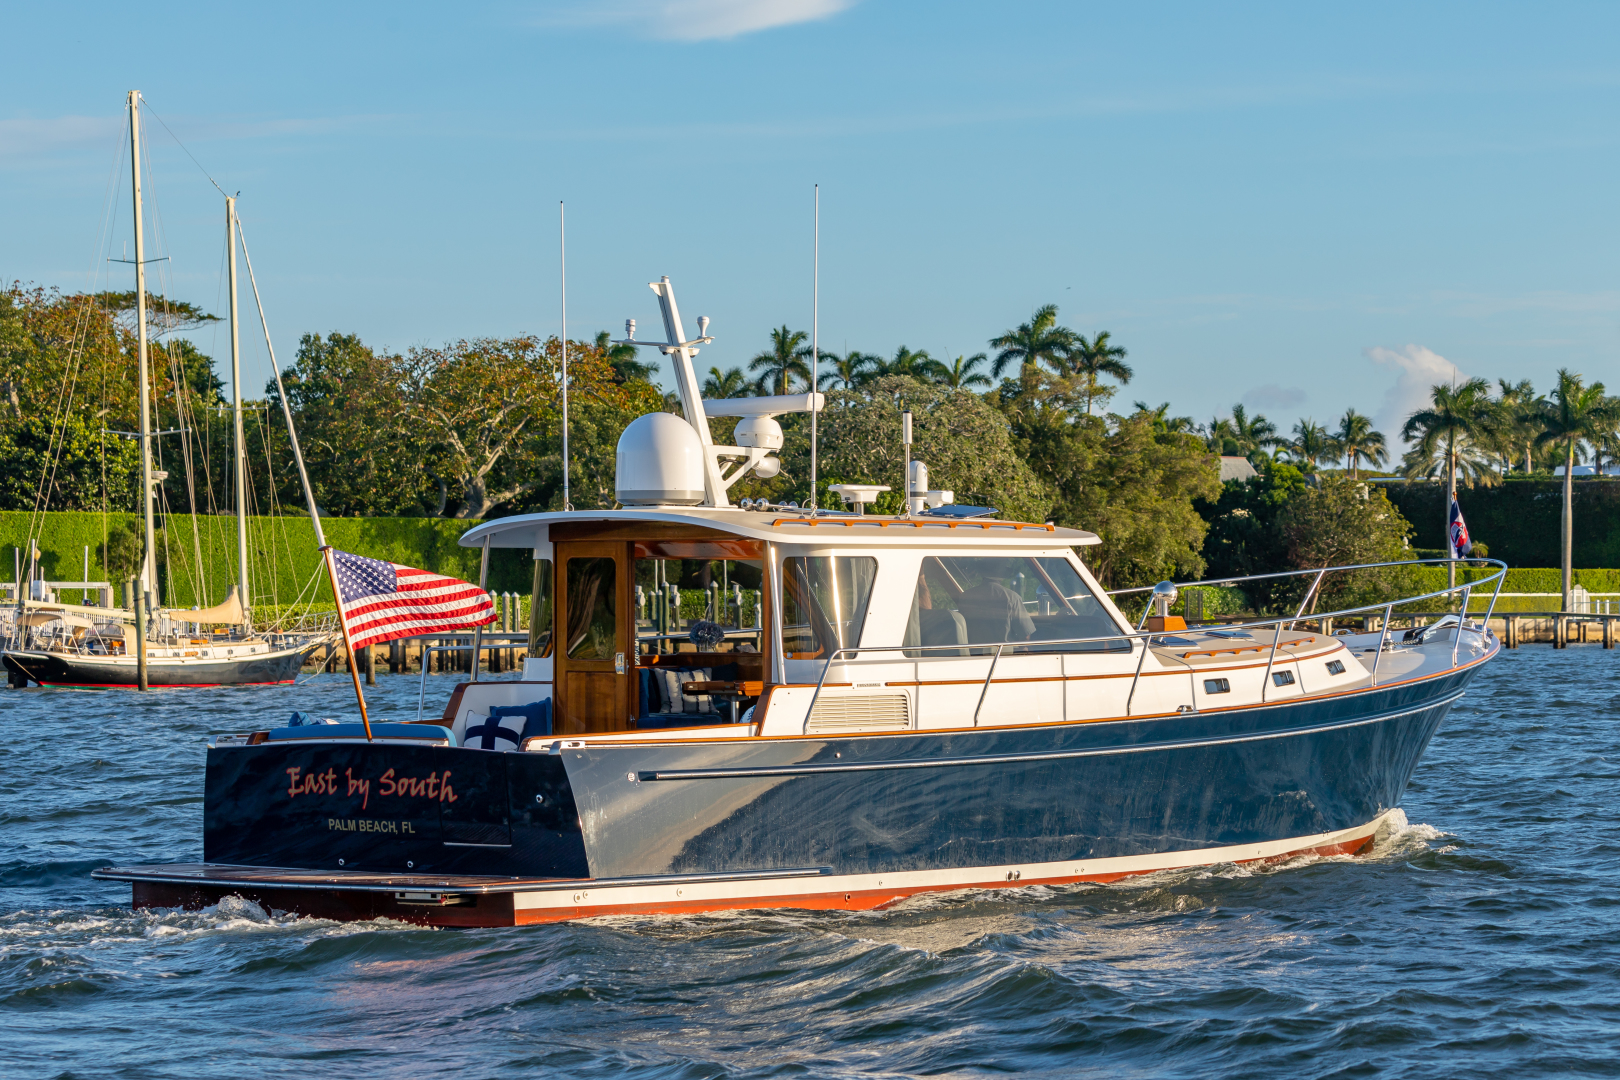 Bruckmann-Abaco 47 2020-EAST BY SOUTH West Palm Beach-Florida-United States-Starboard Stern-1623831 | Thumbnail